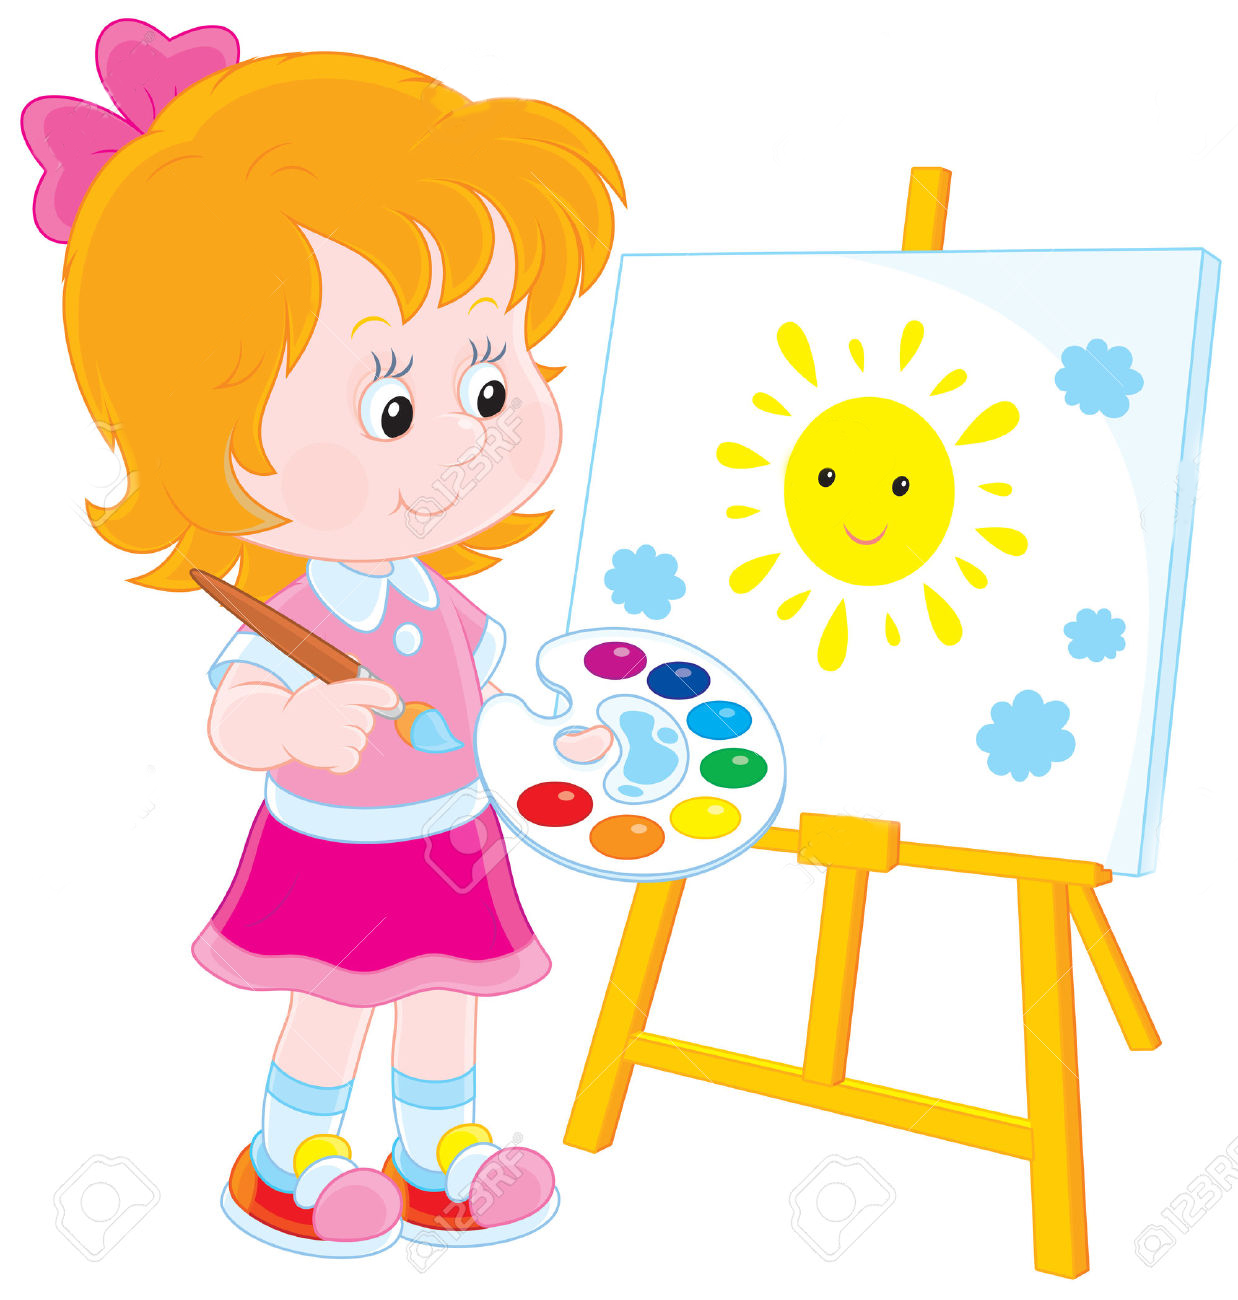 another famous creativity among kids is cartoon drawing there are a lot of kids who are passionate - Cartoon Kids Drawing